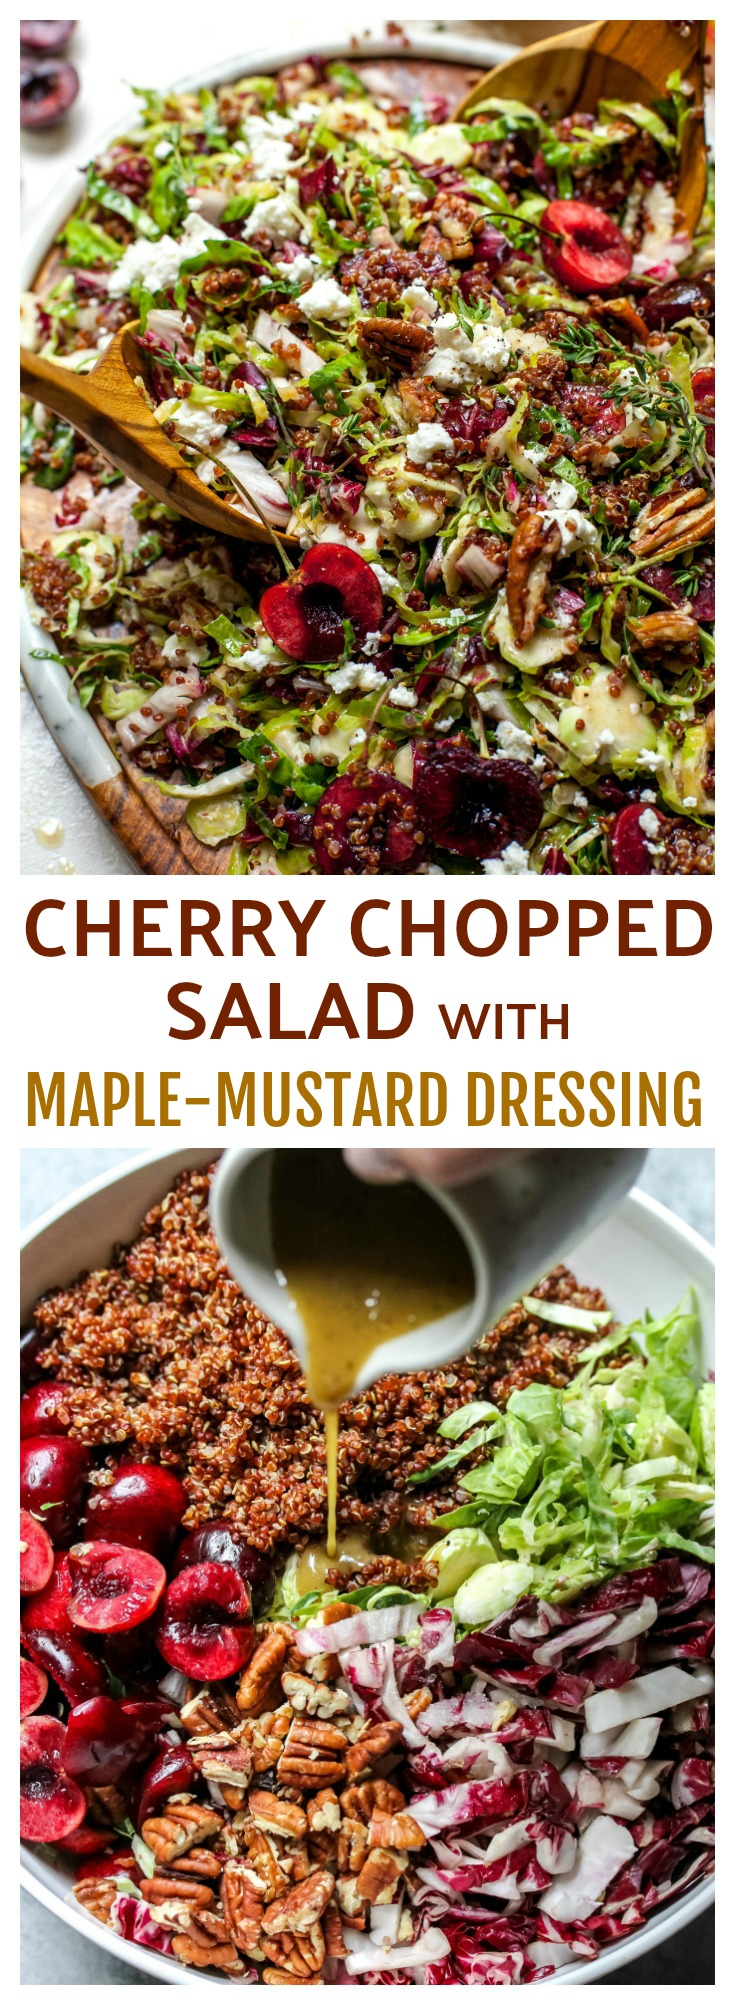 Cherry Chopped Salad with Brussels, Goat Cheese, Pecans, and Maple-Mustard Dressing